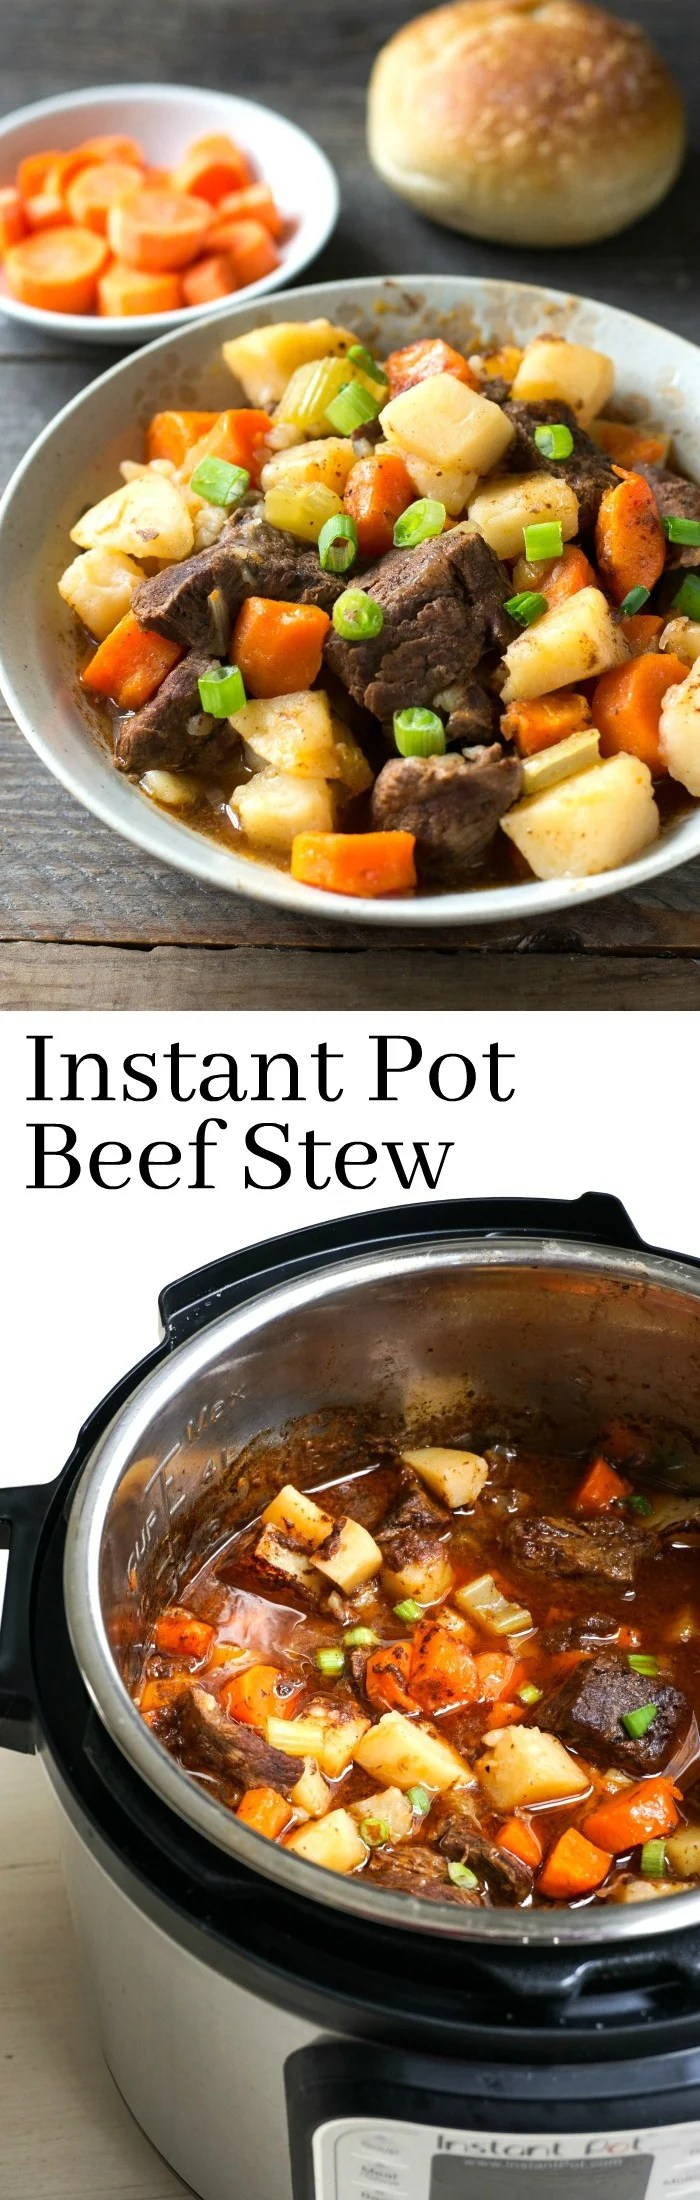 This Instant Pot Beef Stew is a delicious, healthy dinner recipe. It's so easy to make this comfort food favorite in the Instant Pot. Gluten-free, dairy-free recipe from realfoodrealdeals.com